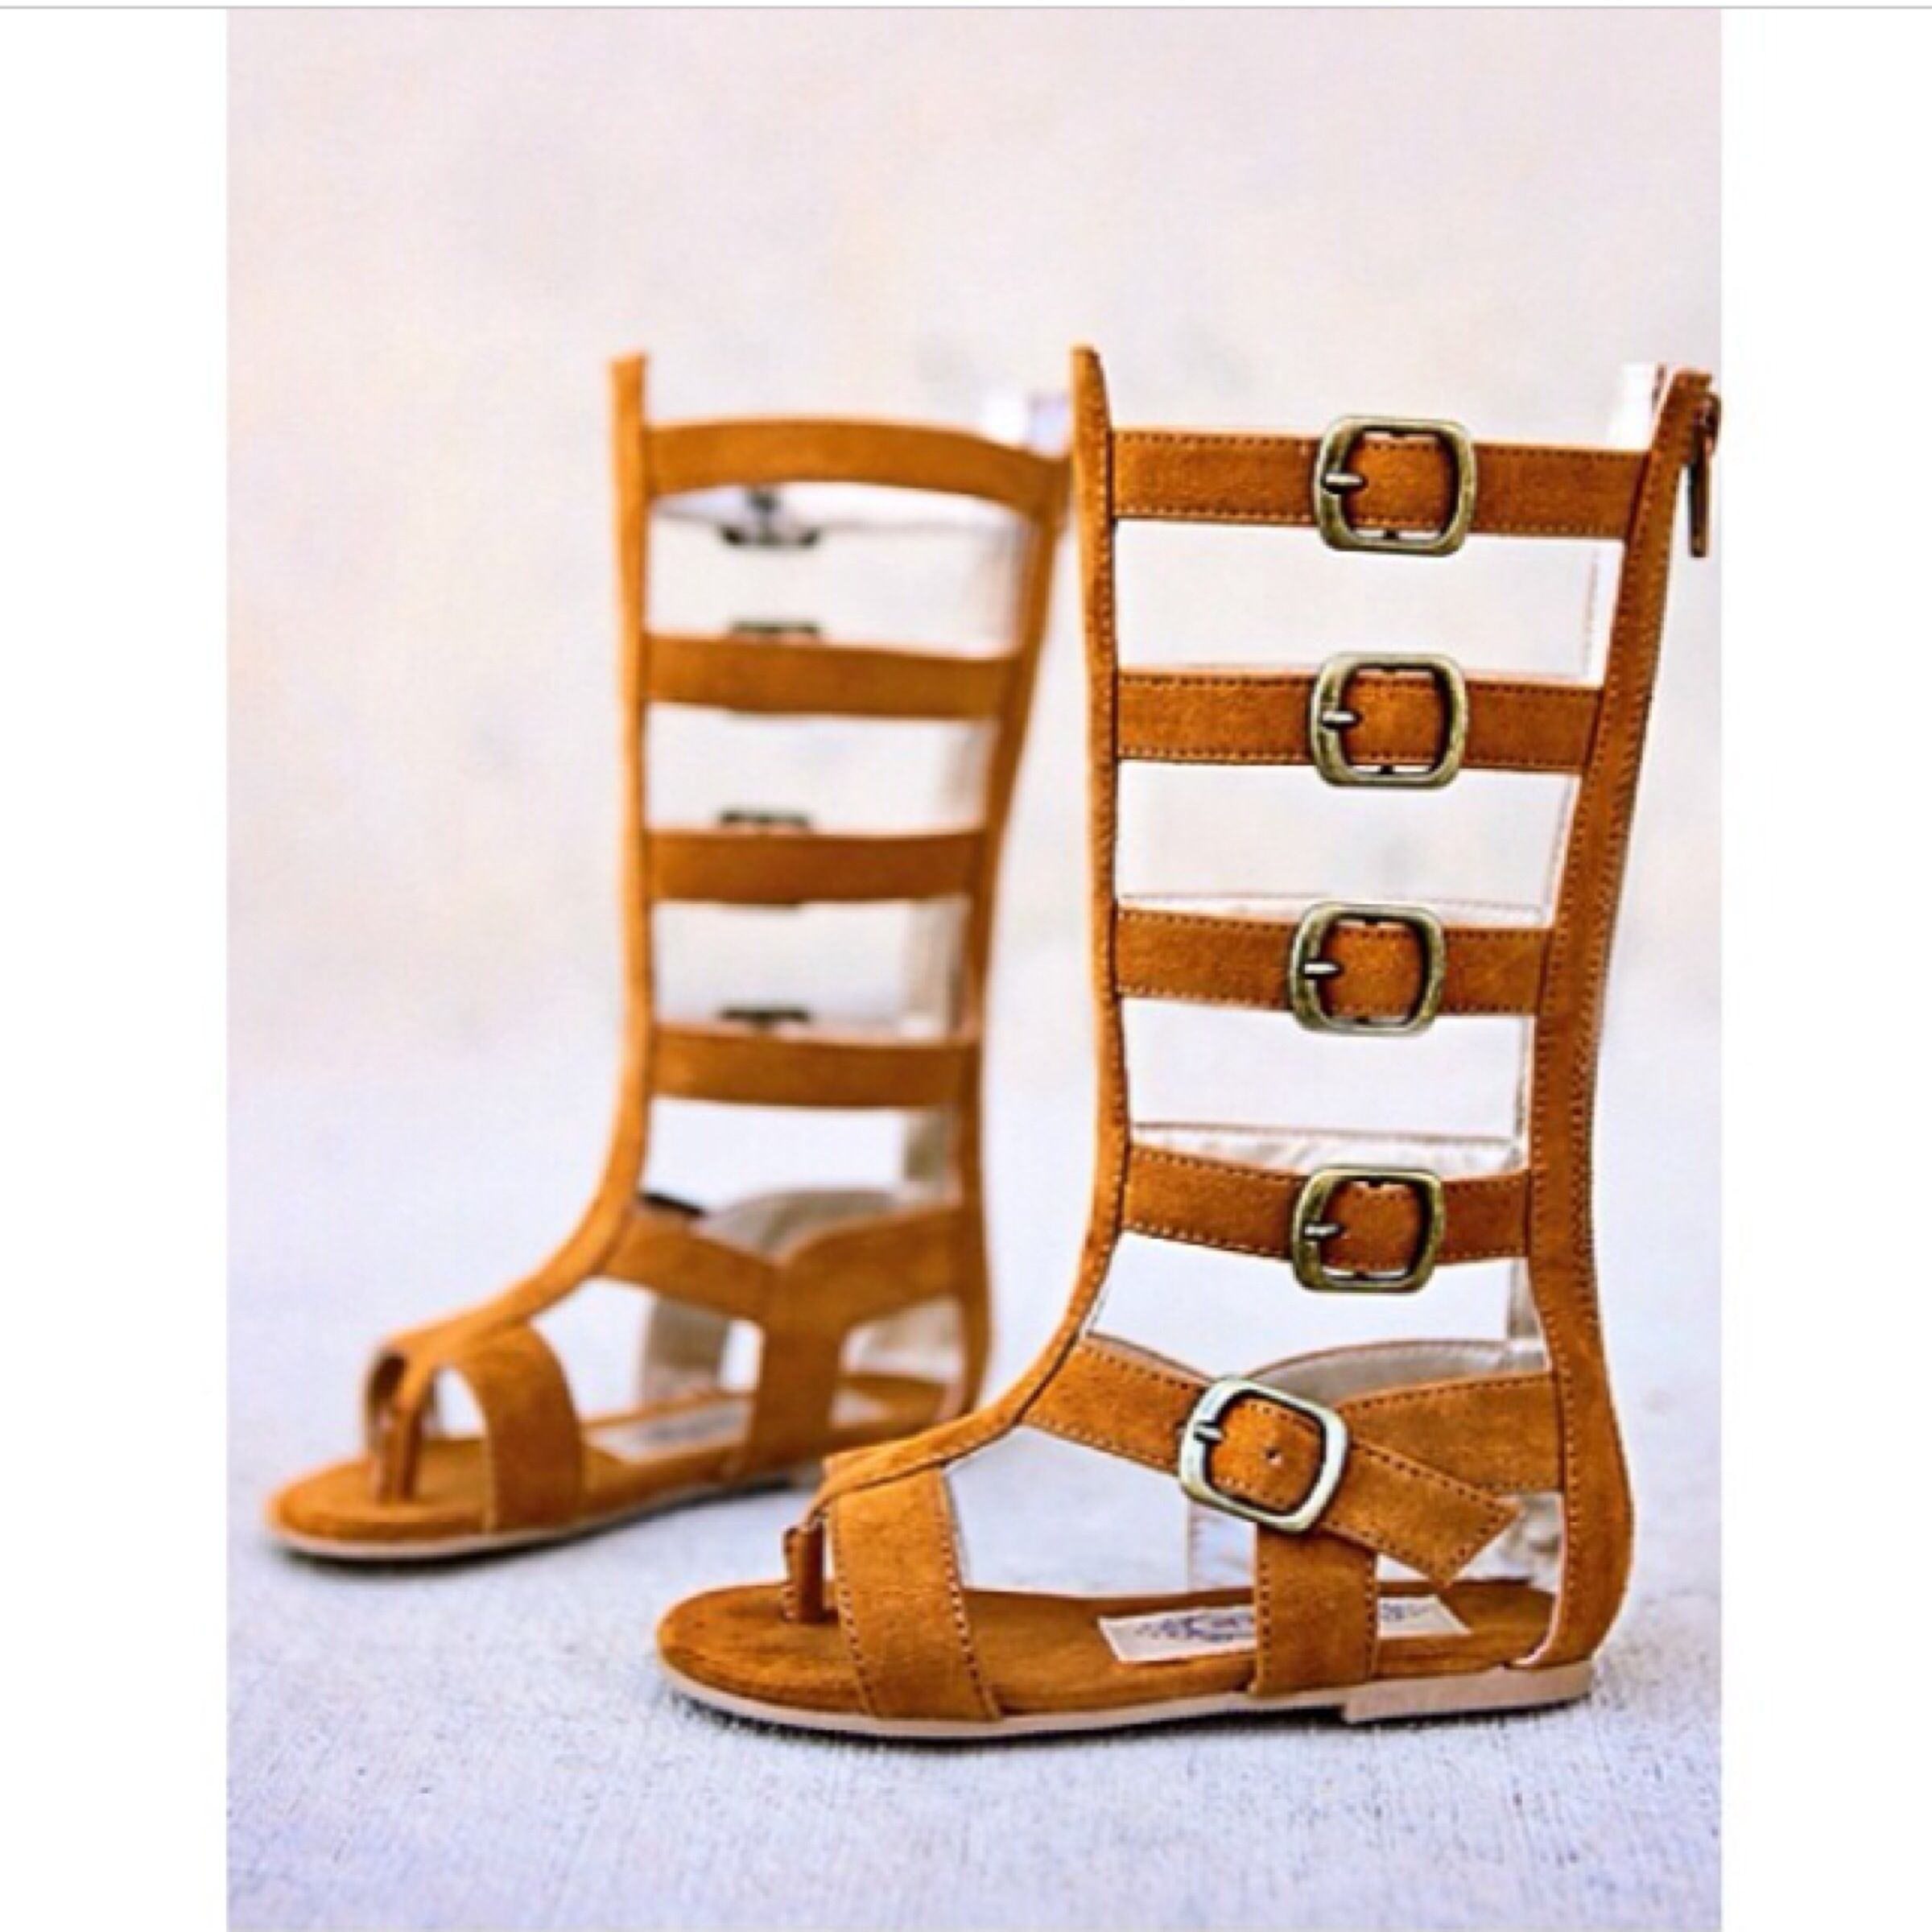 db0bbf422dc5 Joyfolie jayla in suede coming april cant wait been waiting for these jpg  2400x2400 Joyfolie jayla